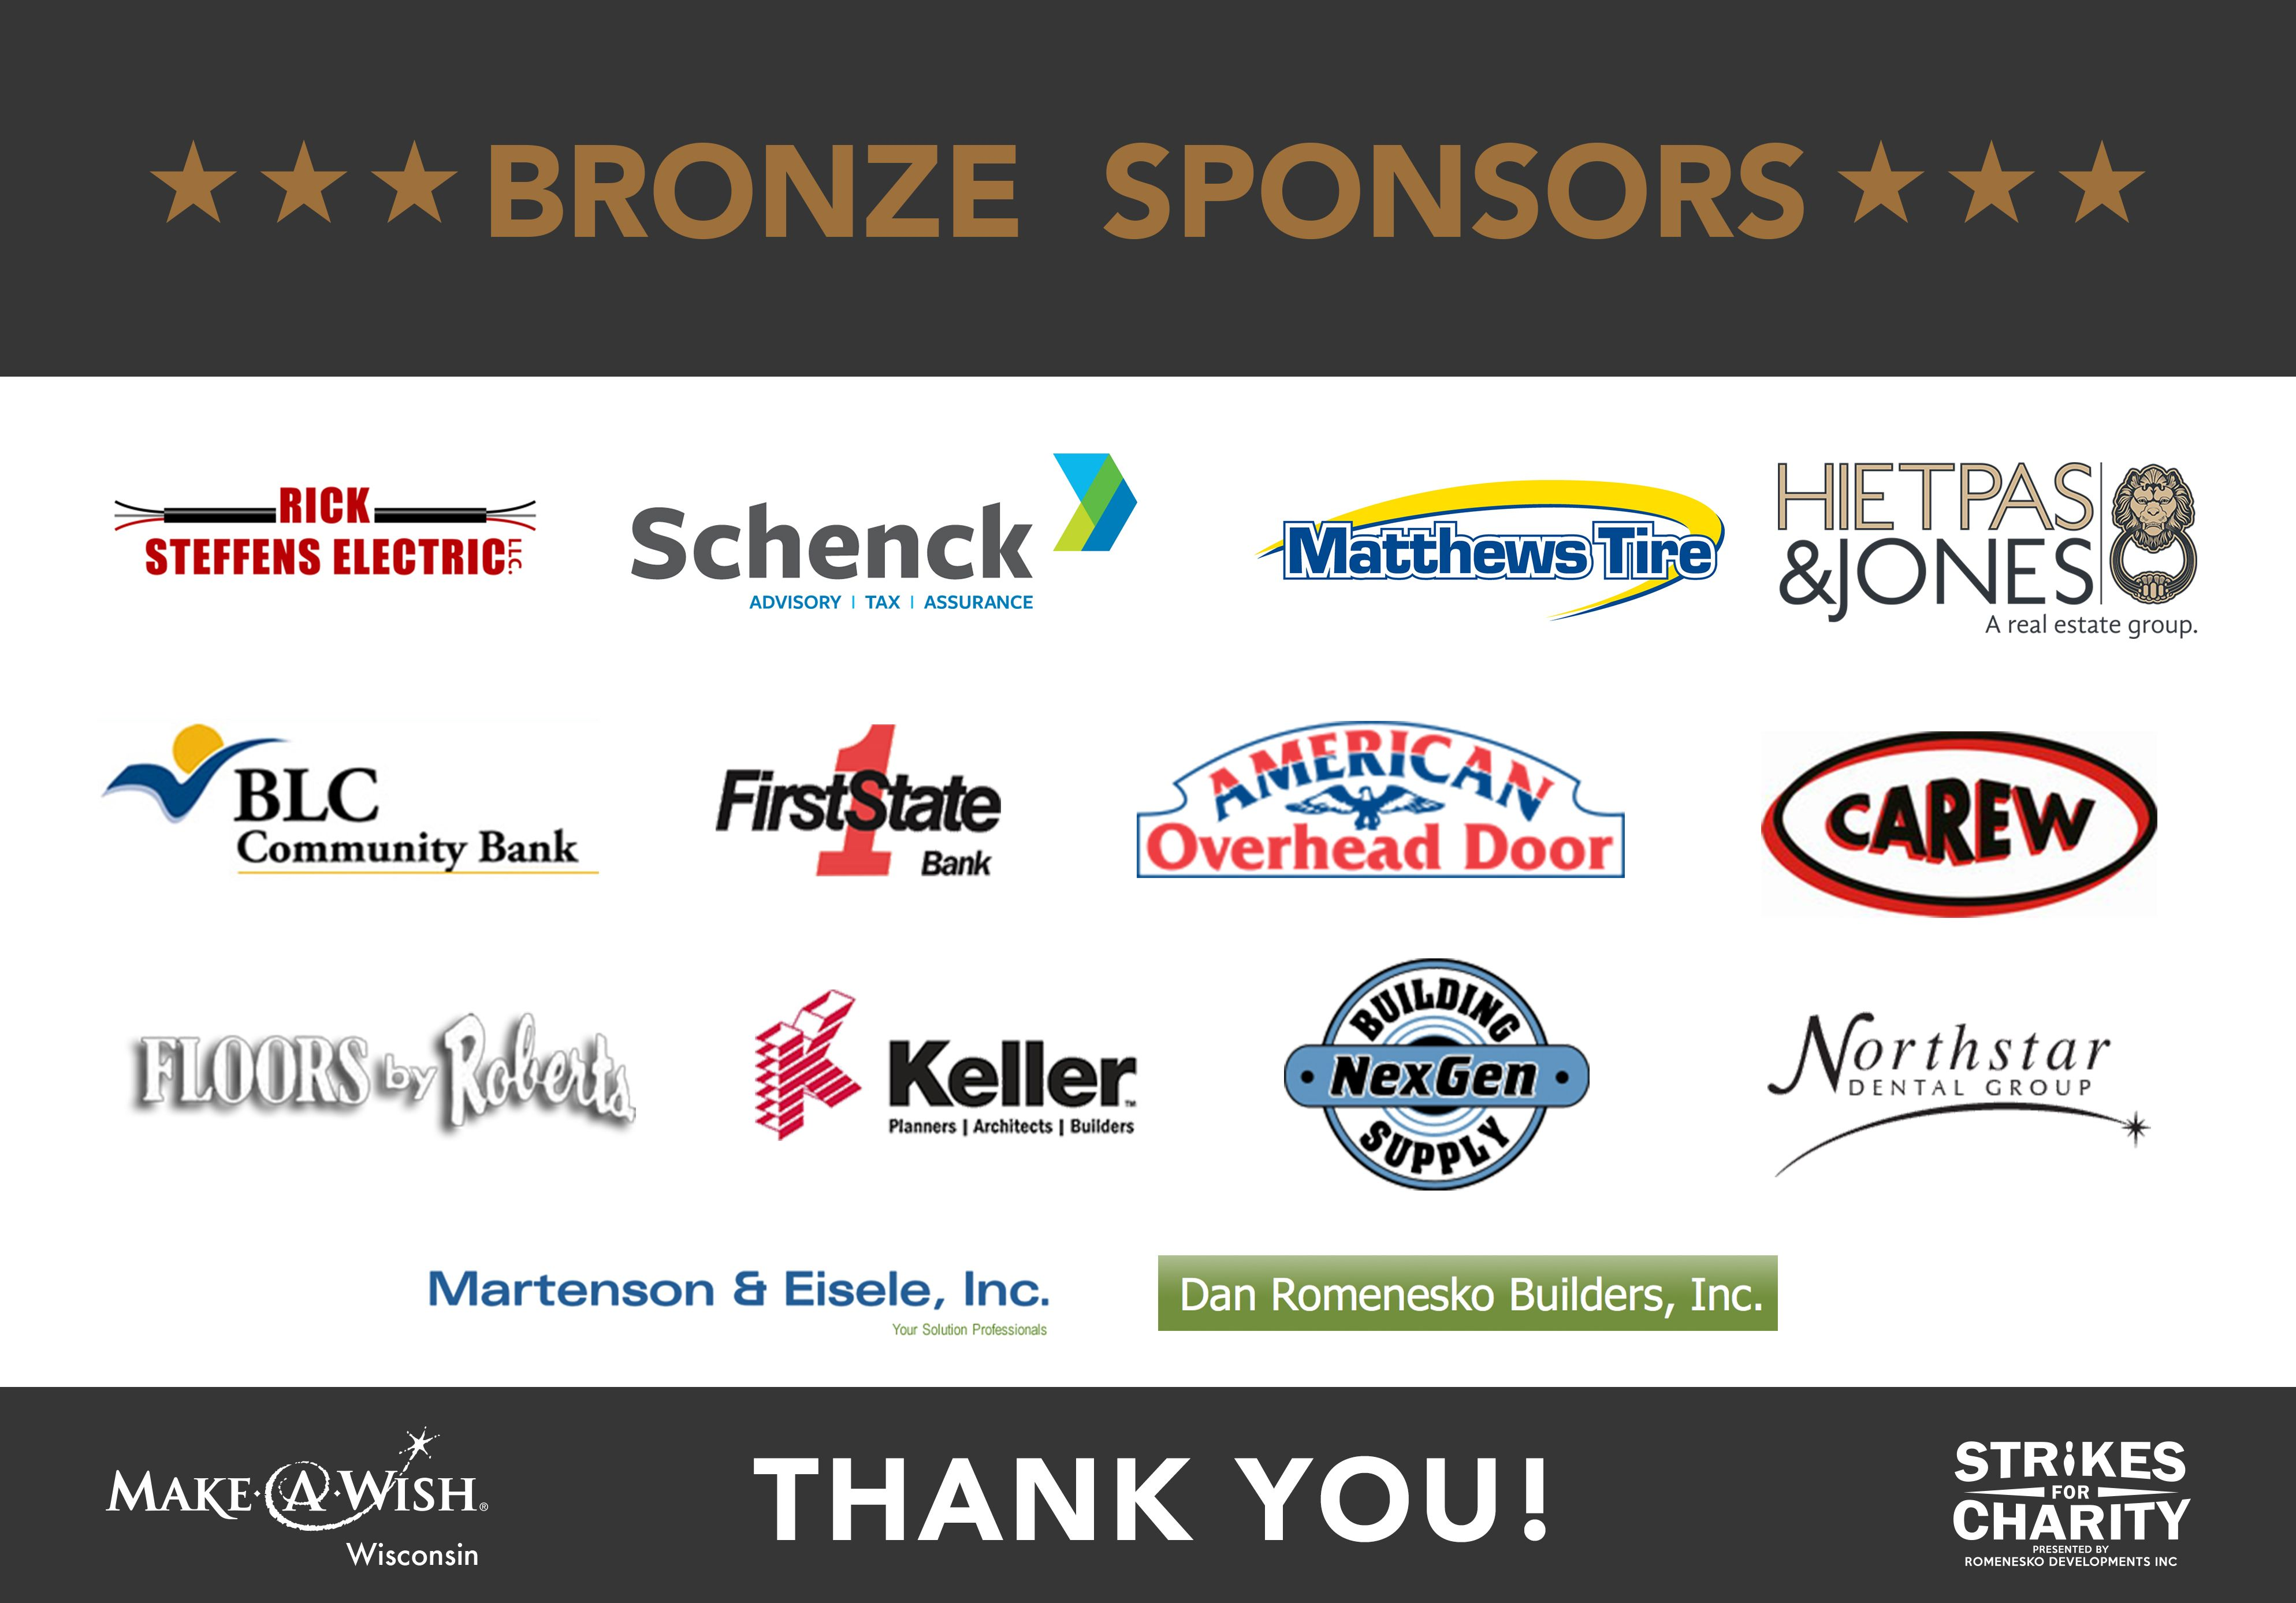 Strikes For Charity 2017 Bronze Sponsors